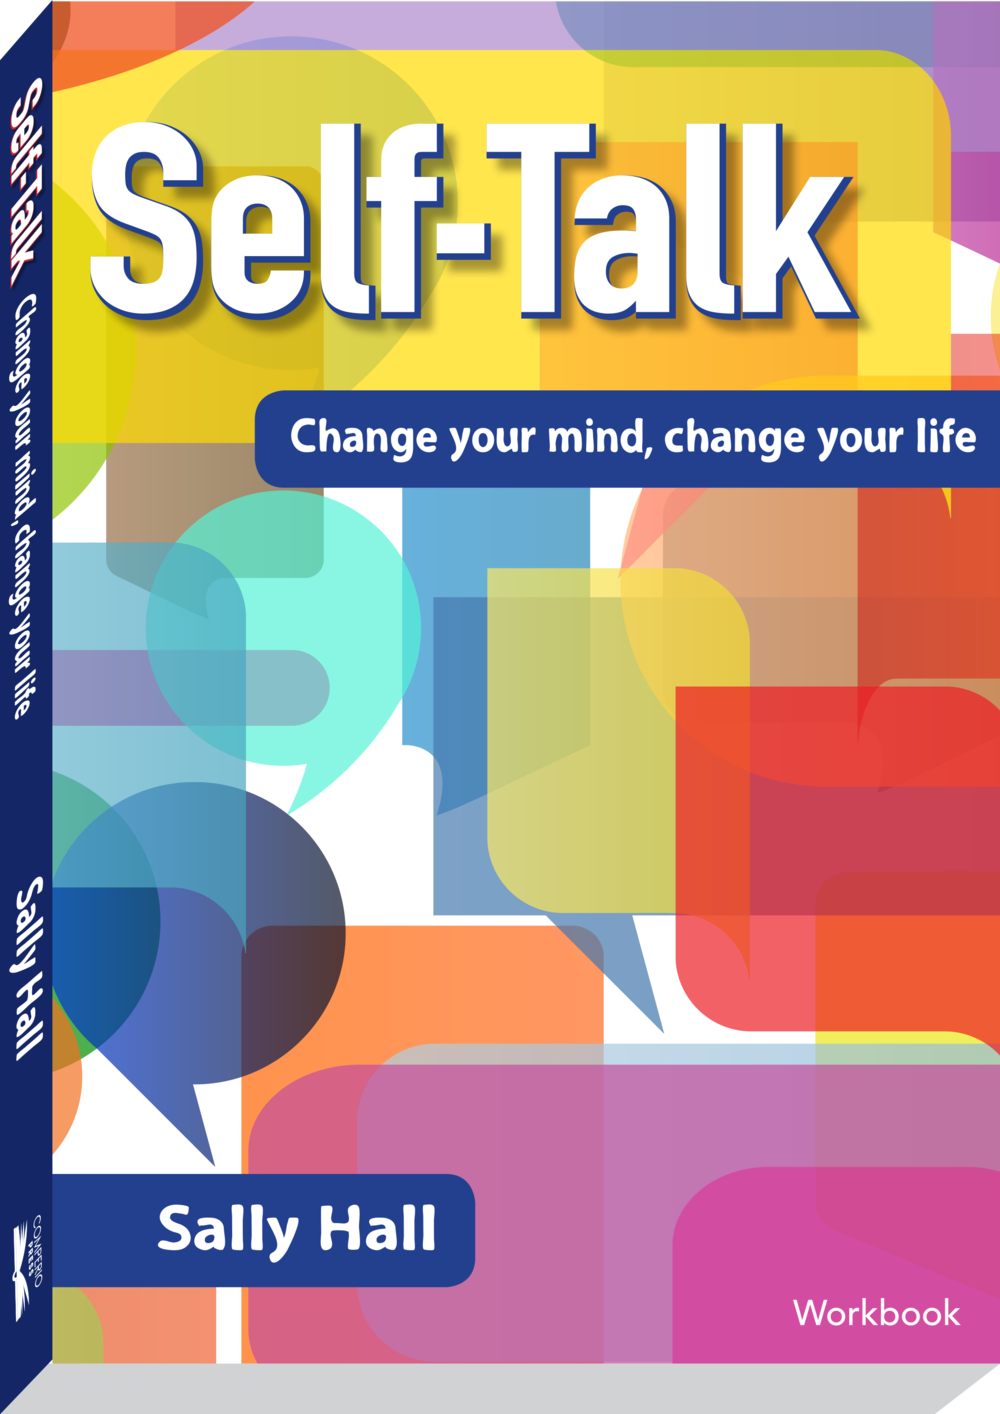 Self_Talk_book_cover_3D(blue).png